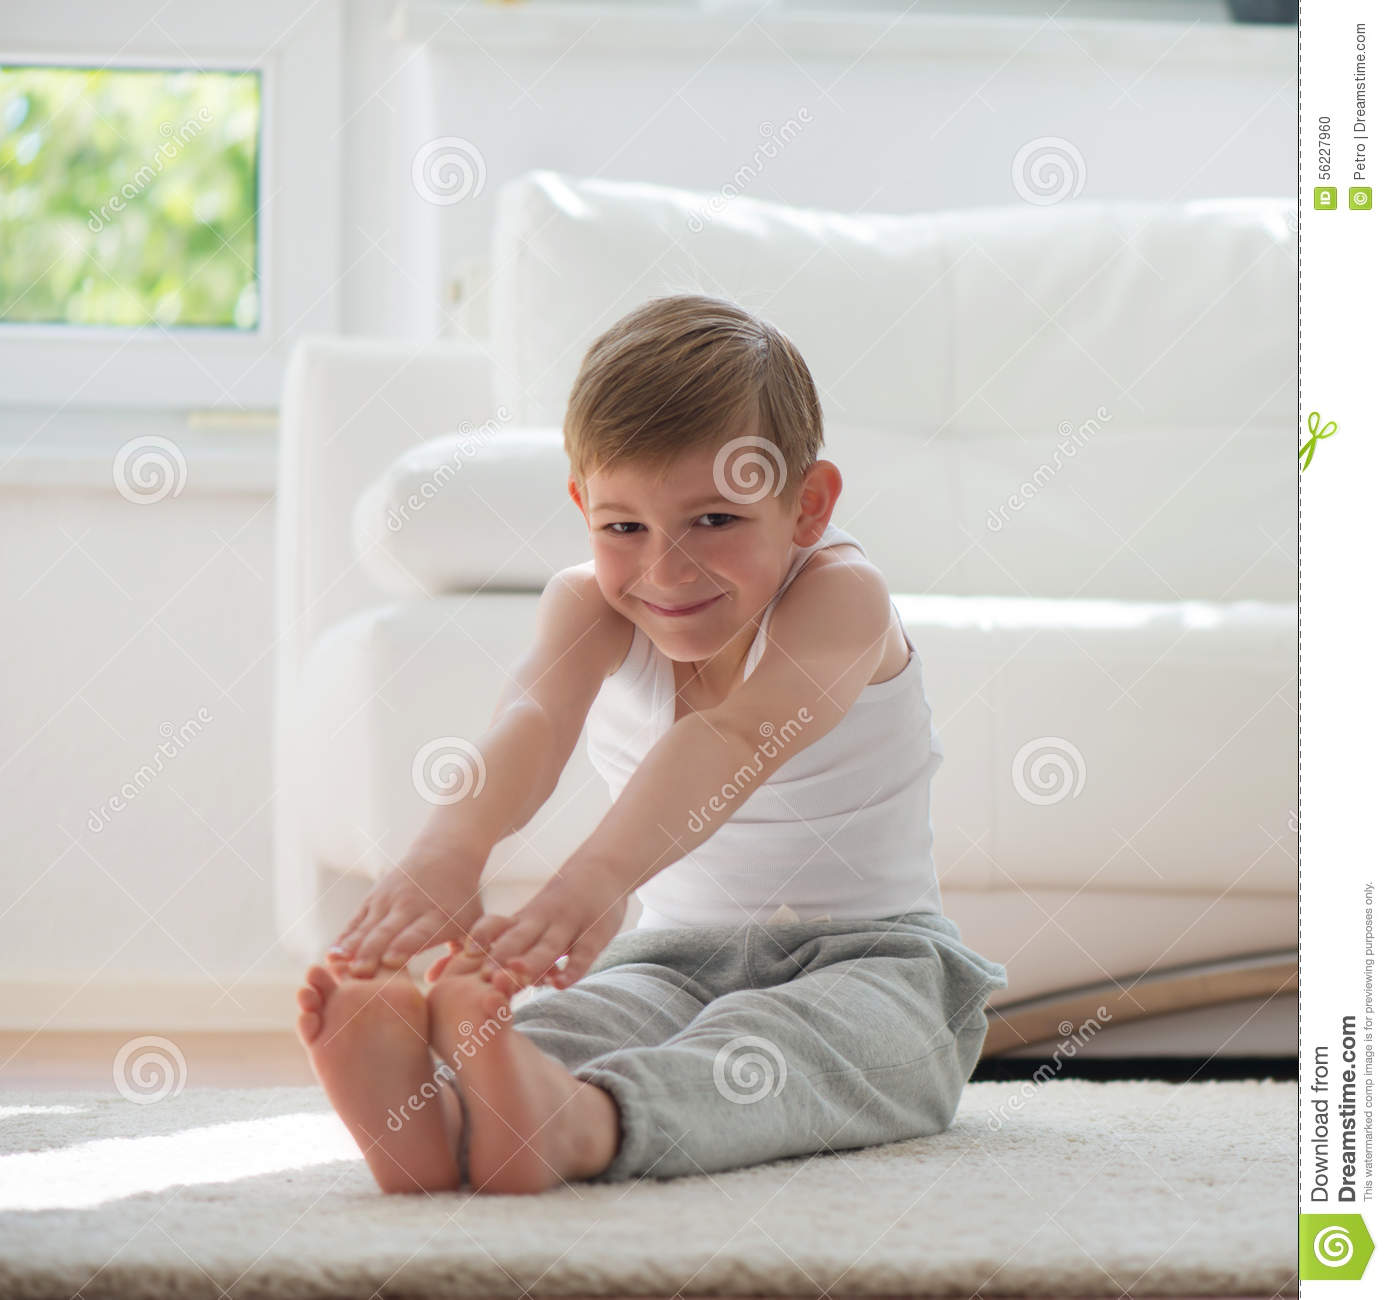 Happy Little Boy Exercising At Home Stock Photo